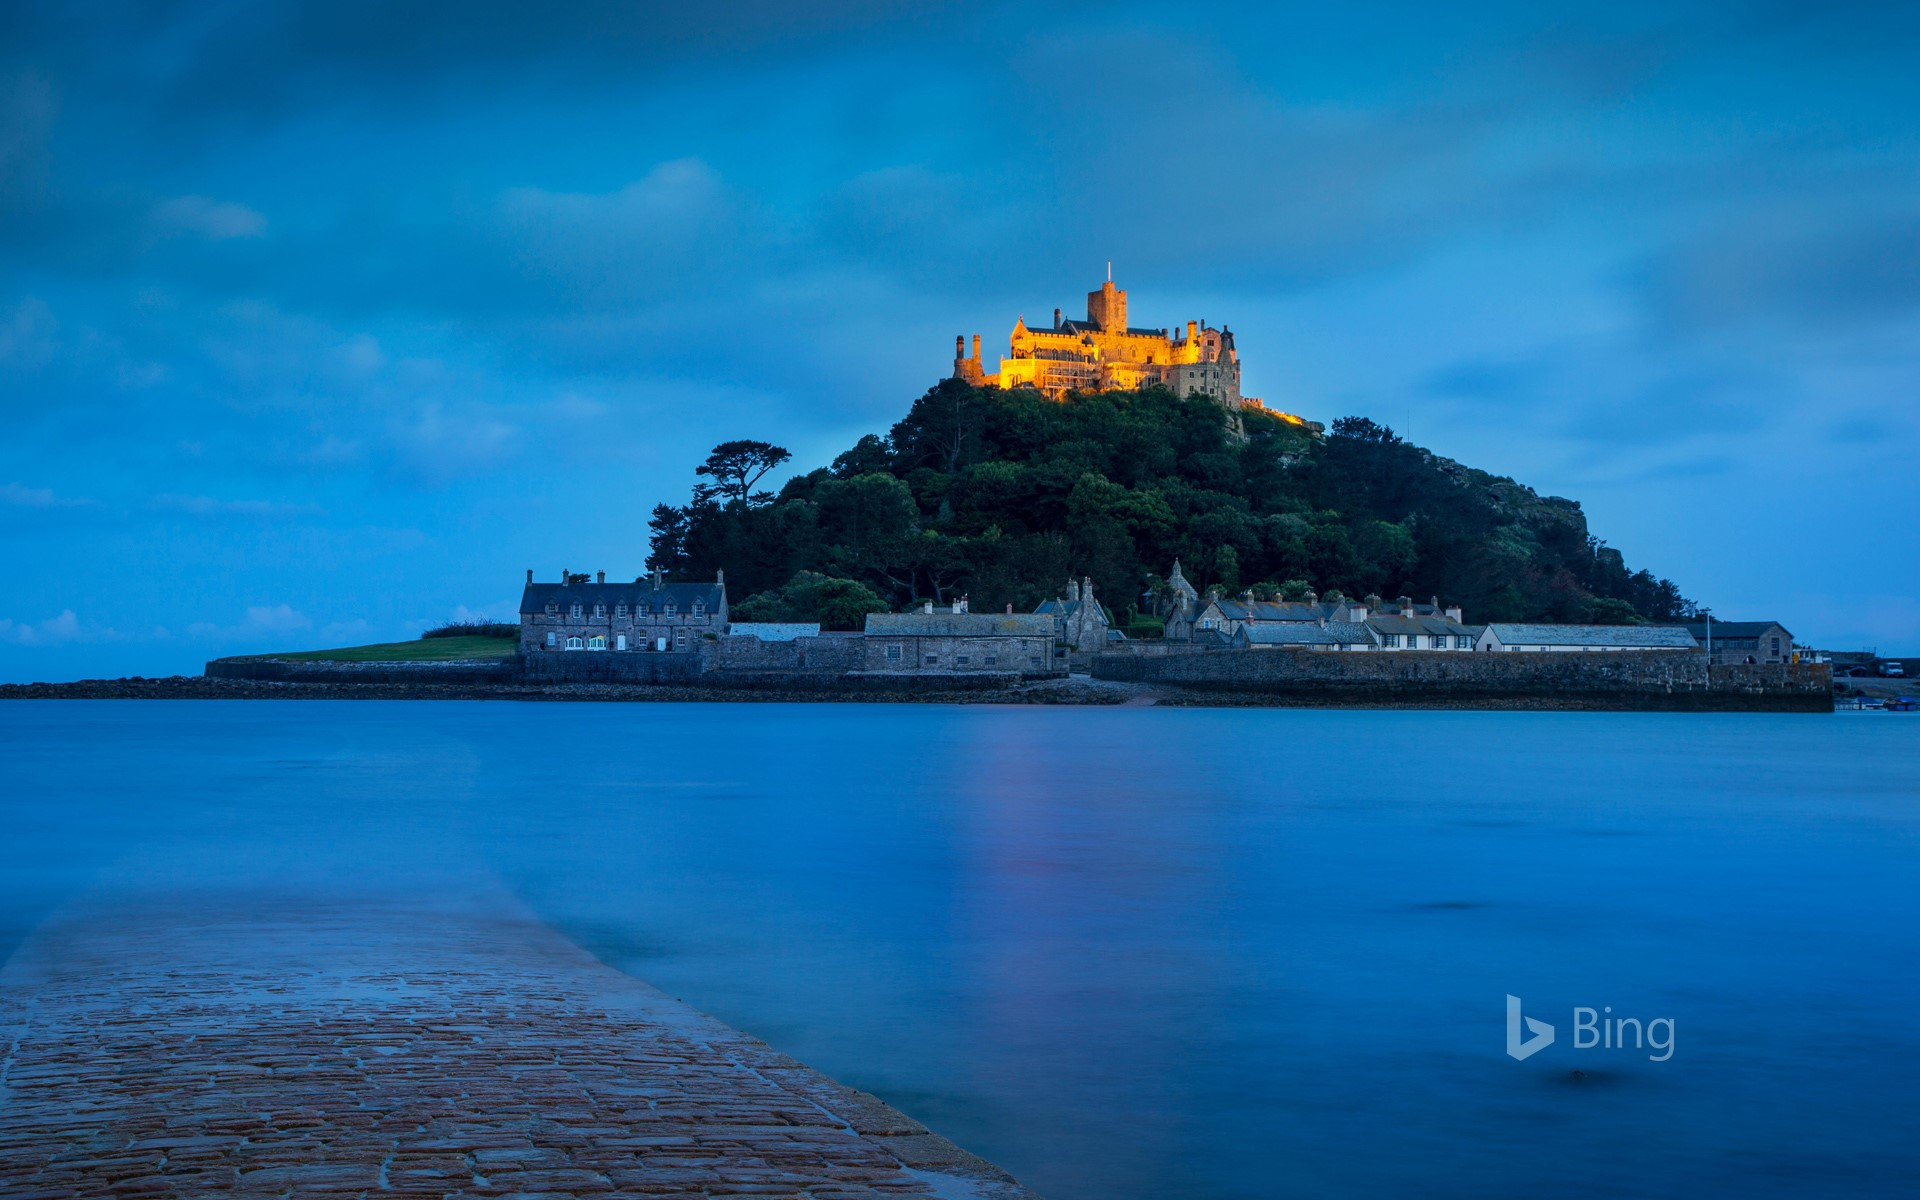 Twilight over St Michael's Mount in Mount's Bay, Cornwall, England